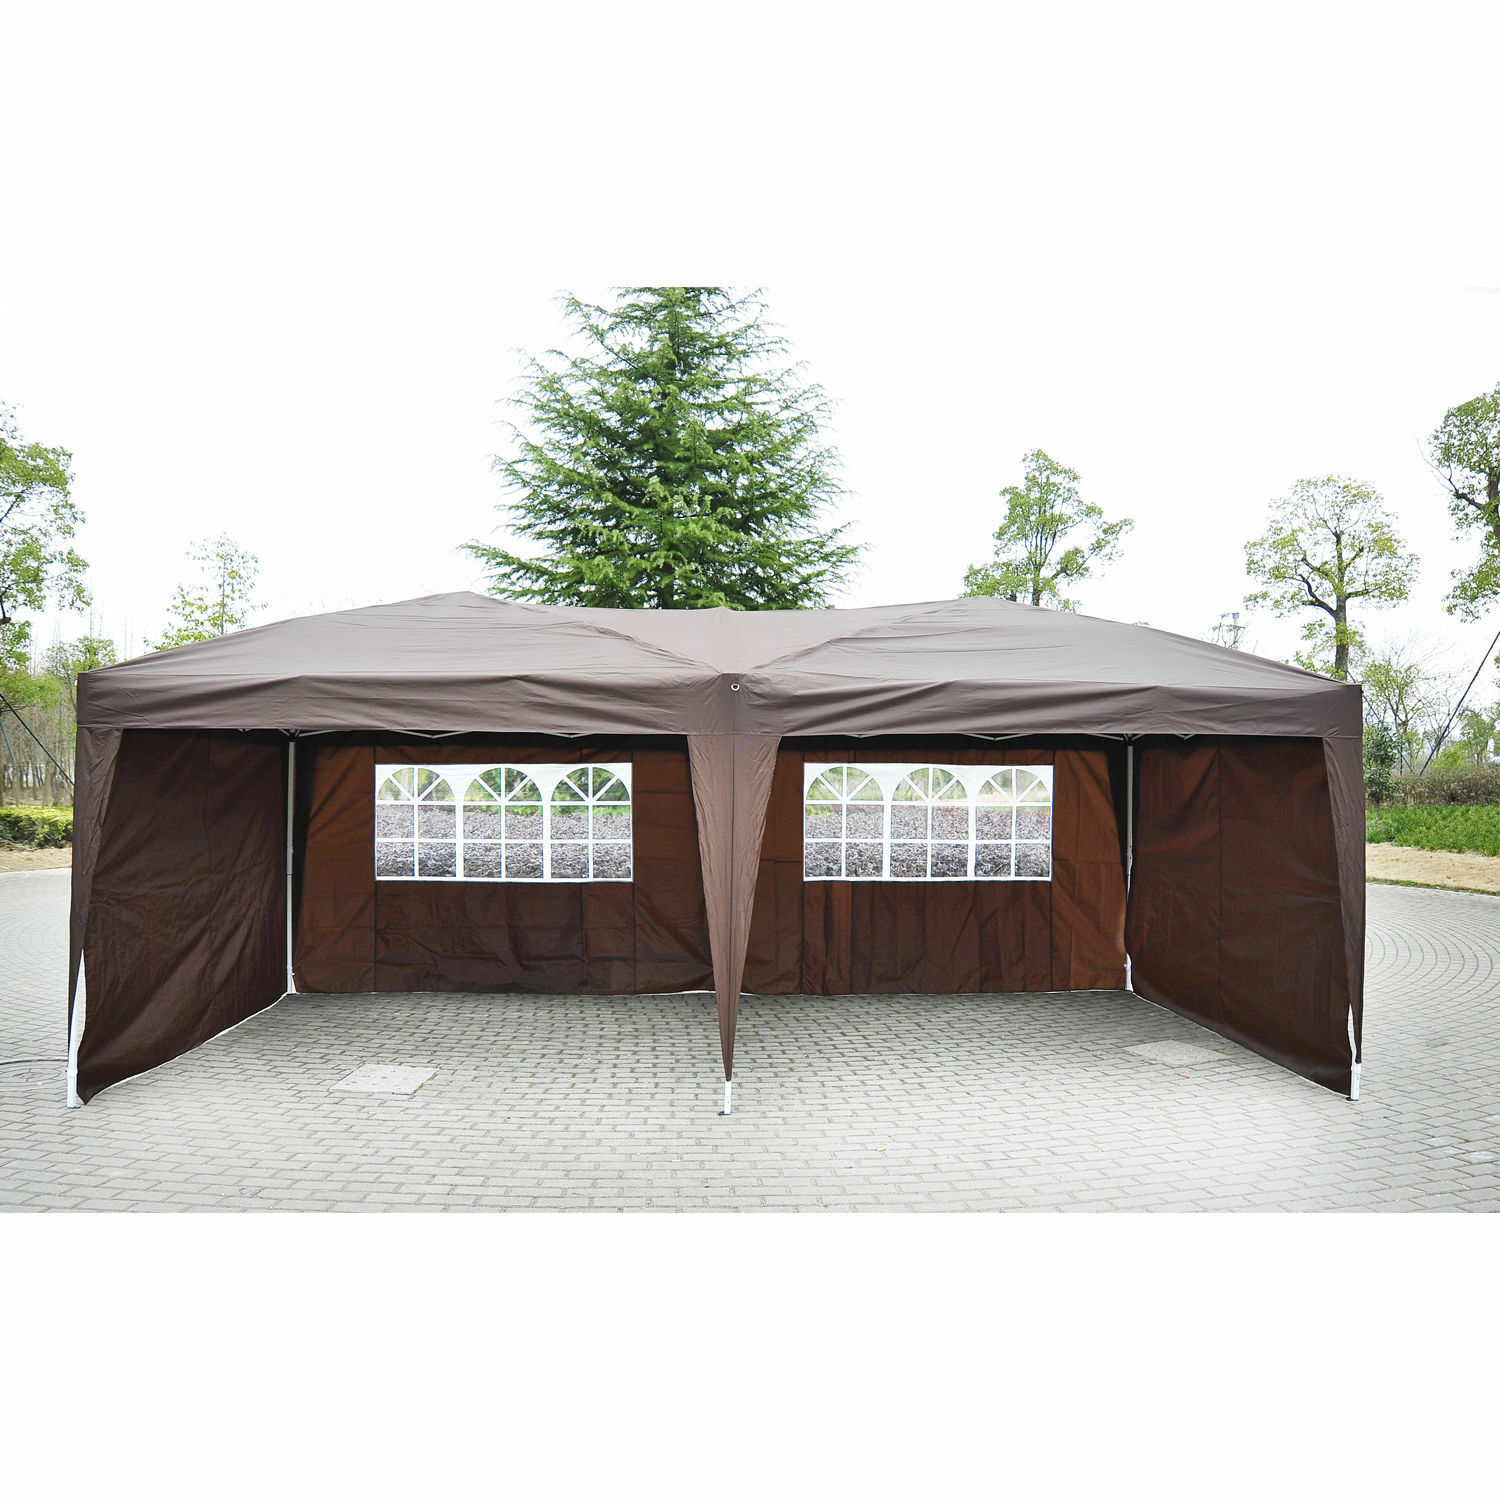 outsunny 10 39 x 20 39 patio gazebo pop up party tent wedding. Black Bedroom Furniture Sets. Home Design Ideas